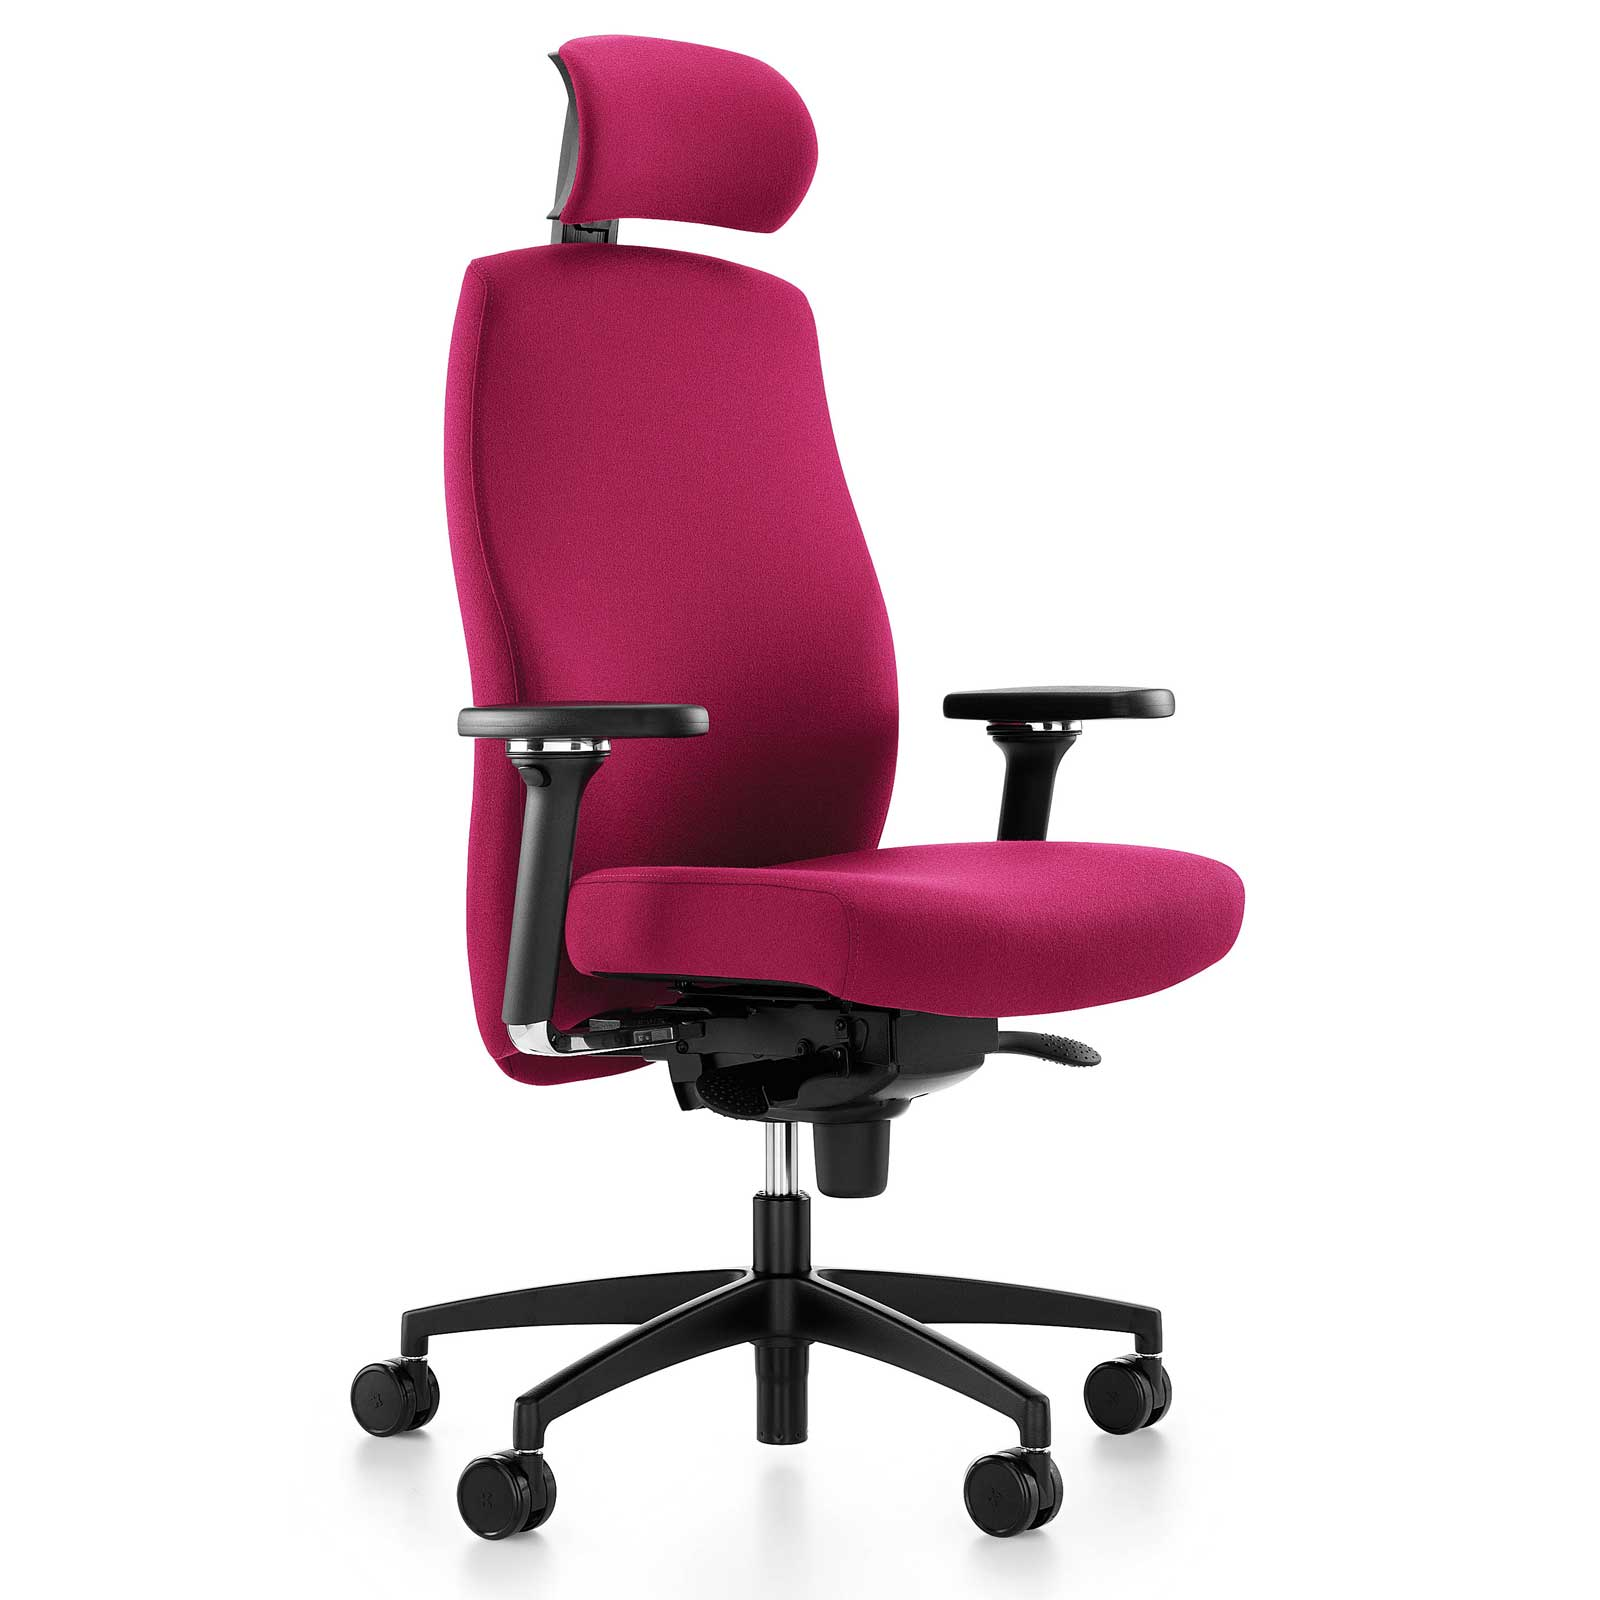 Komac One High Back Red Task Chair with Headrest